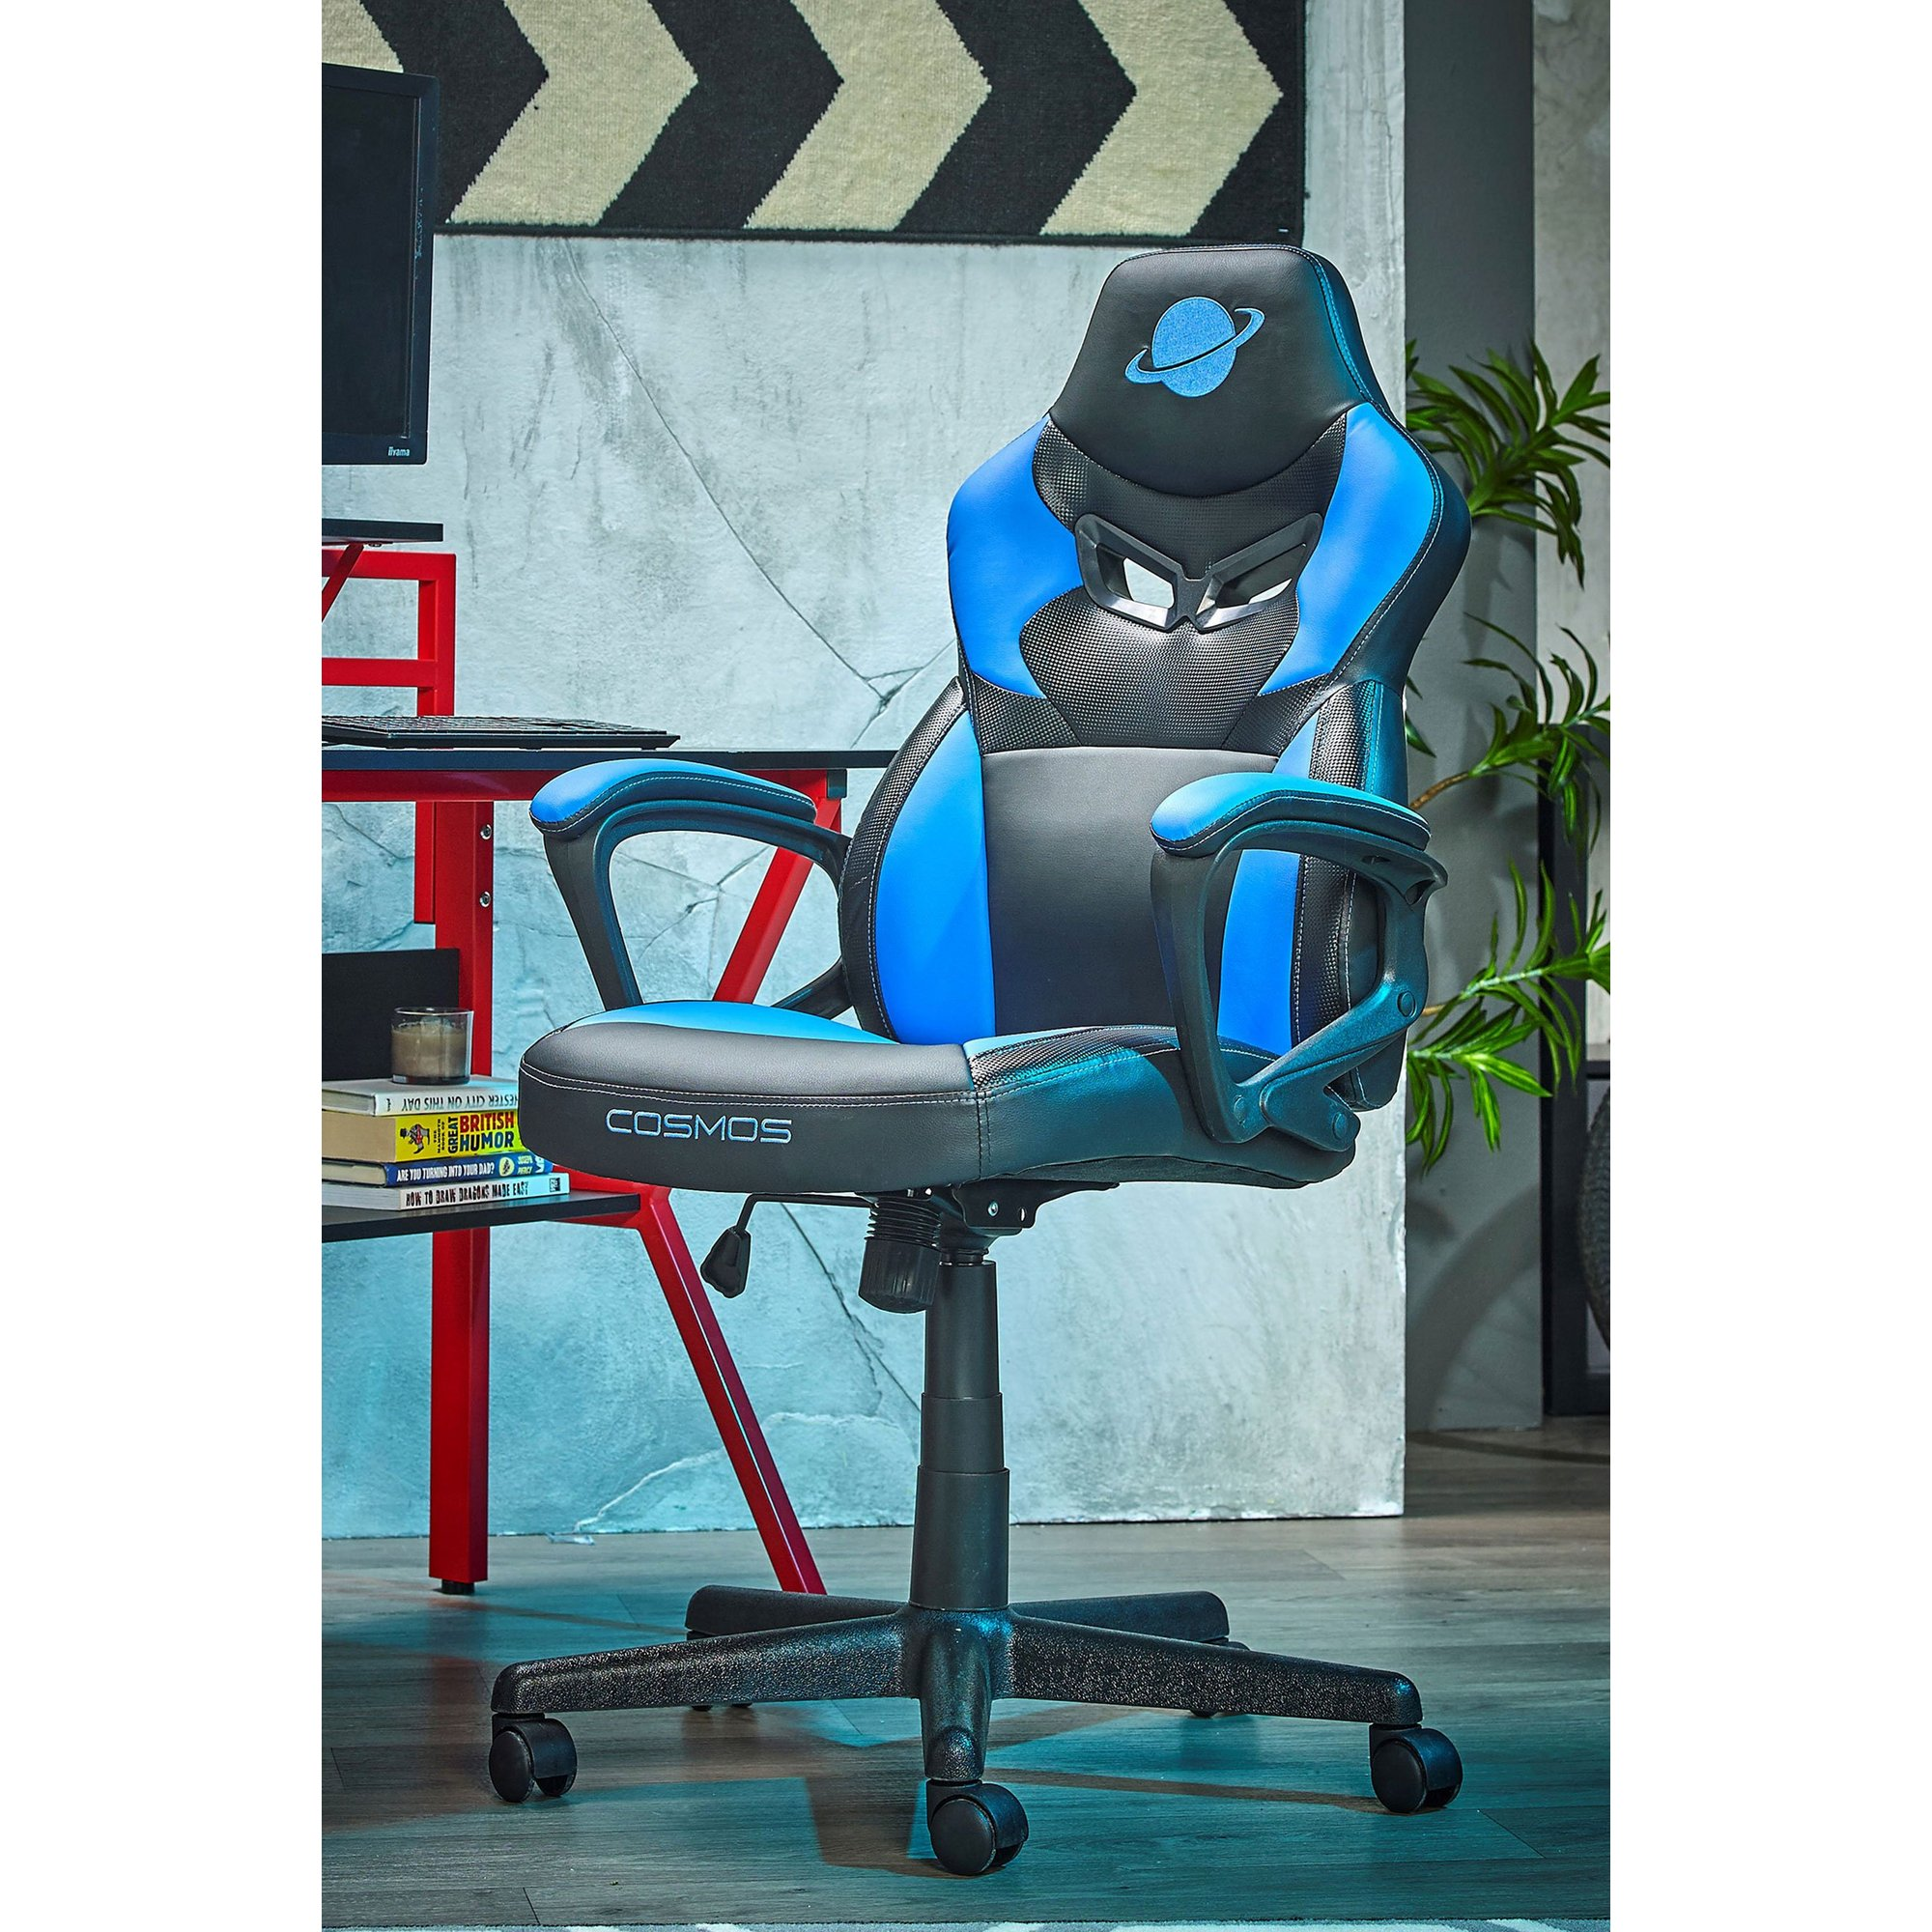 Image of Cosmos Orion Swivel Gaming Chair